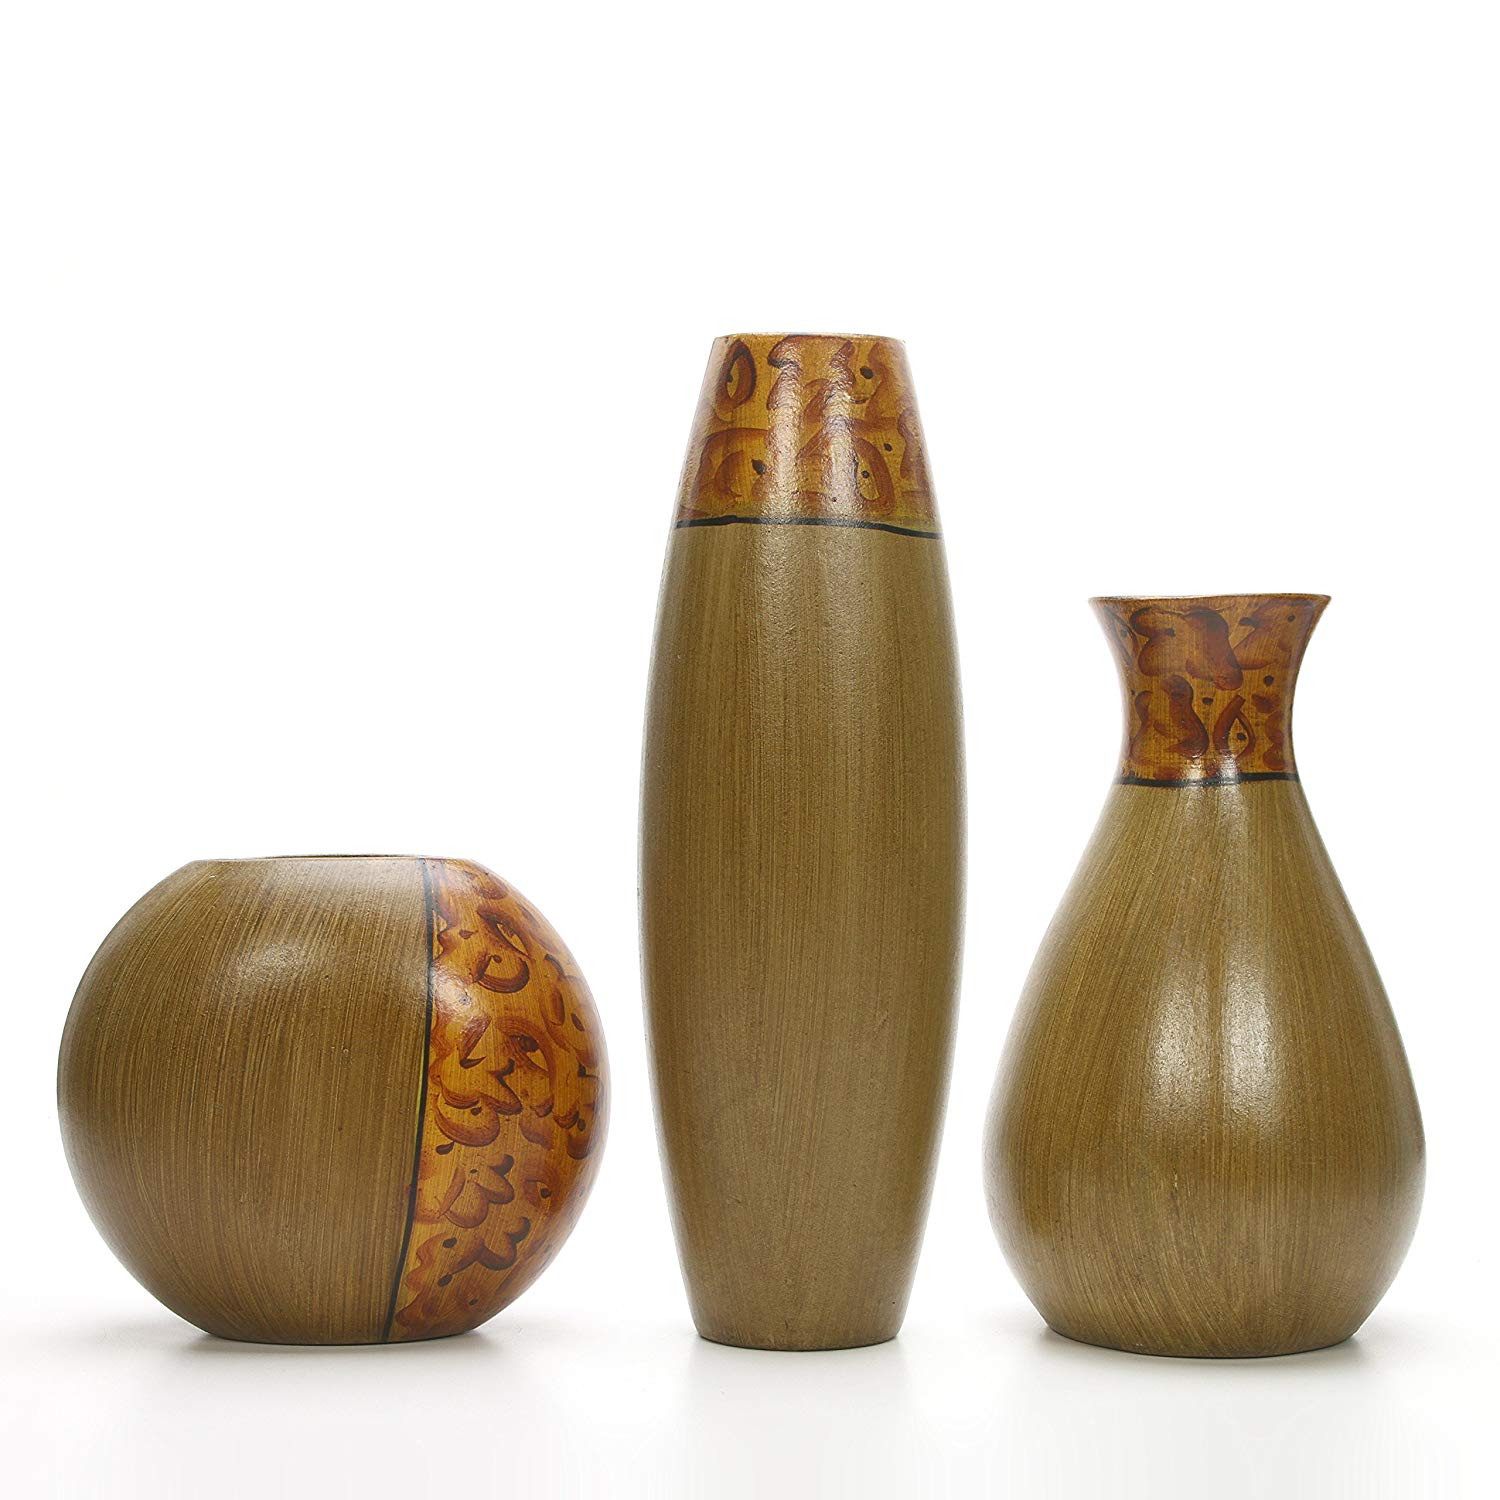 clearance vases in bulk of centerpiece vases amazon com home decor vases pertaining to hosleys set of 3 burlwood vases ideal gift for wedding or special occasion and for